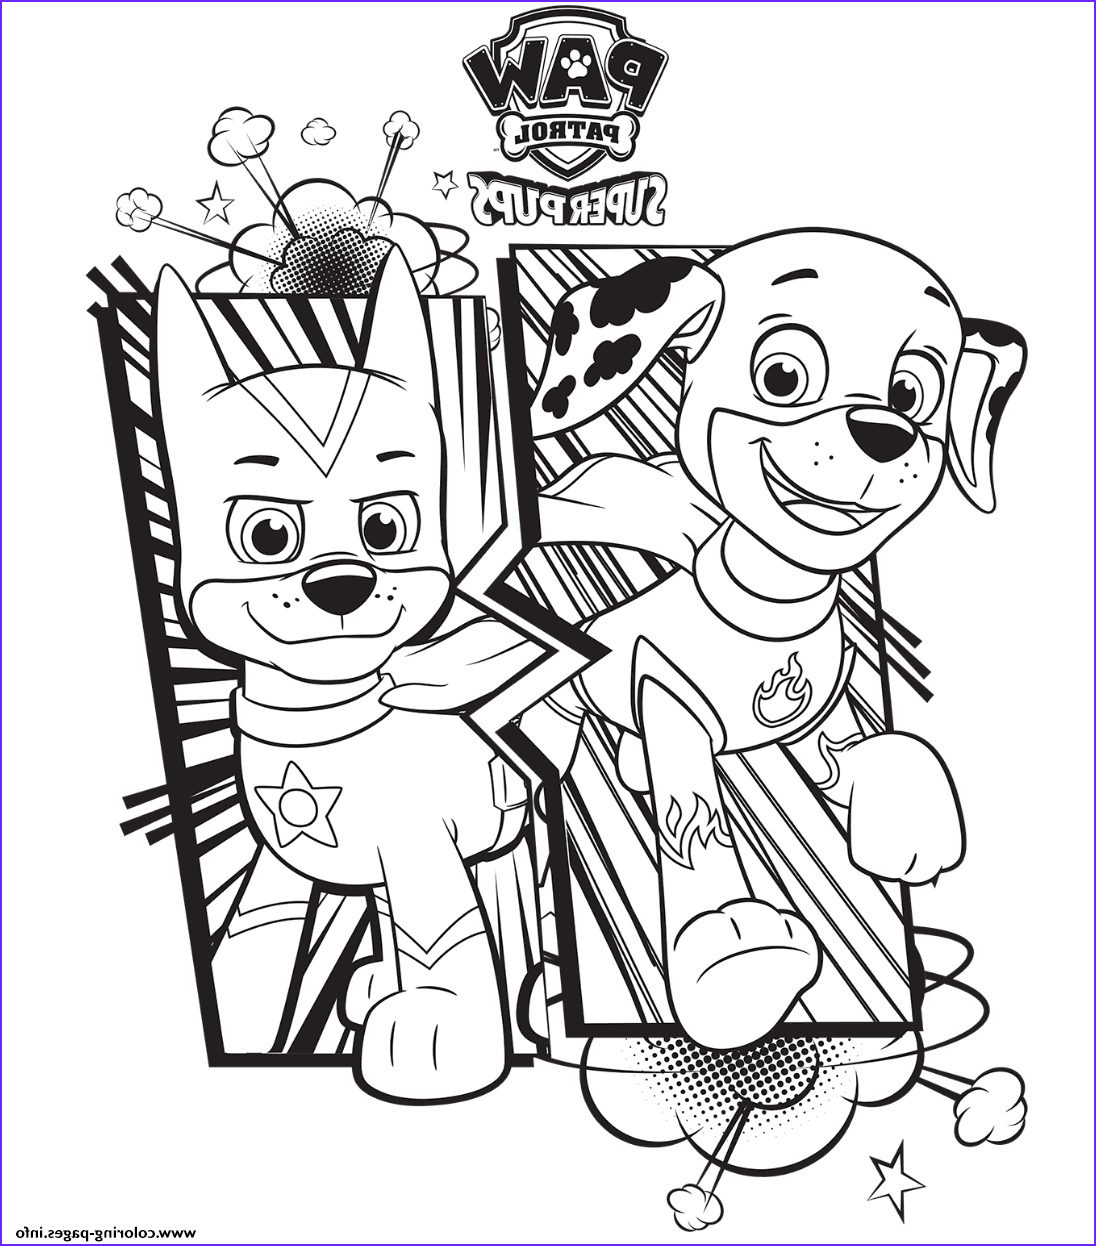 Paw Patrol Coloring Book Luxury Image Free Paw Patrol Coloring Pages Happiness is Homemade